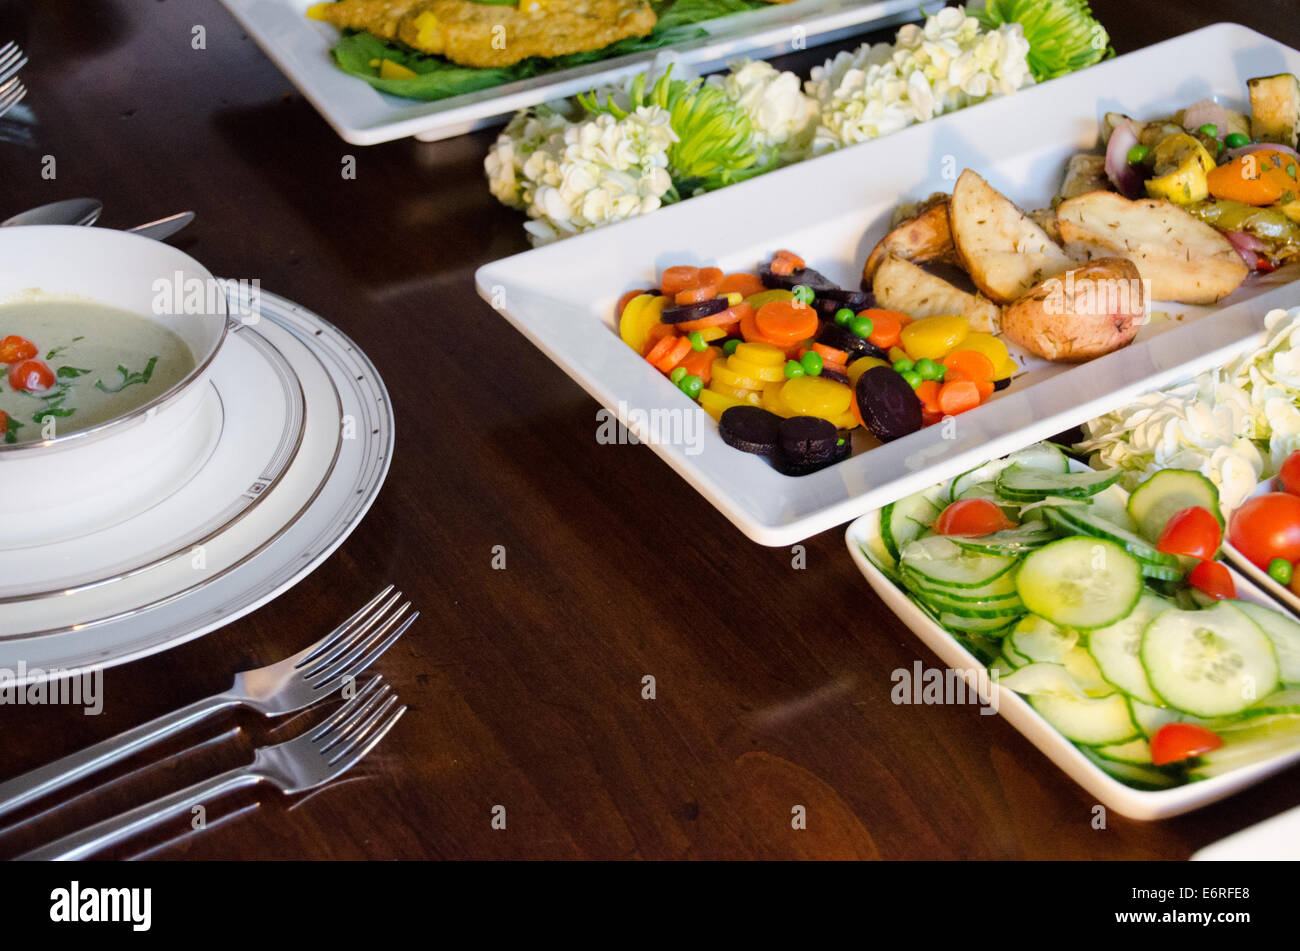 Close Up Shot Of A Buffet Style Family Dinner Party On Dining Room Table With Fish Soup Potatoes And Vegetables